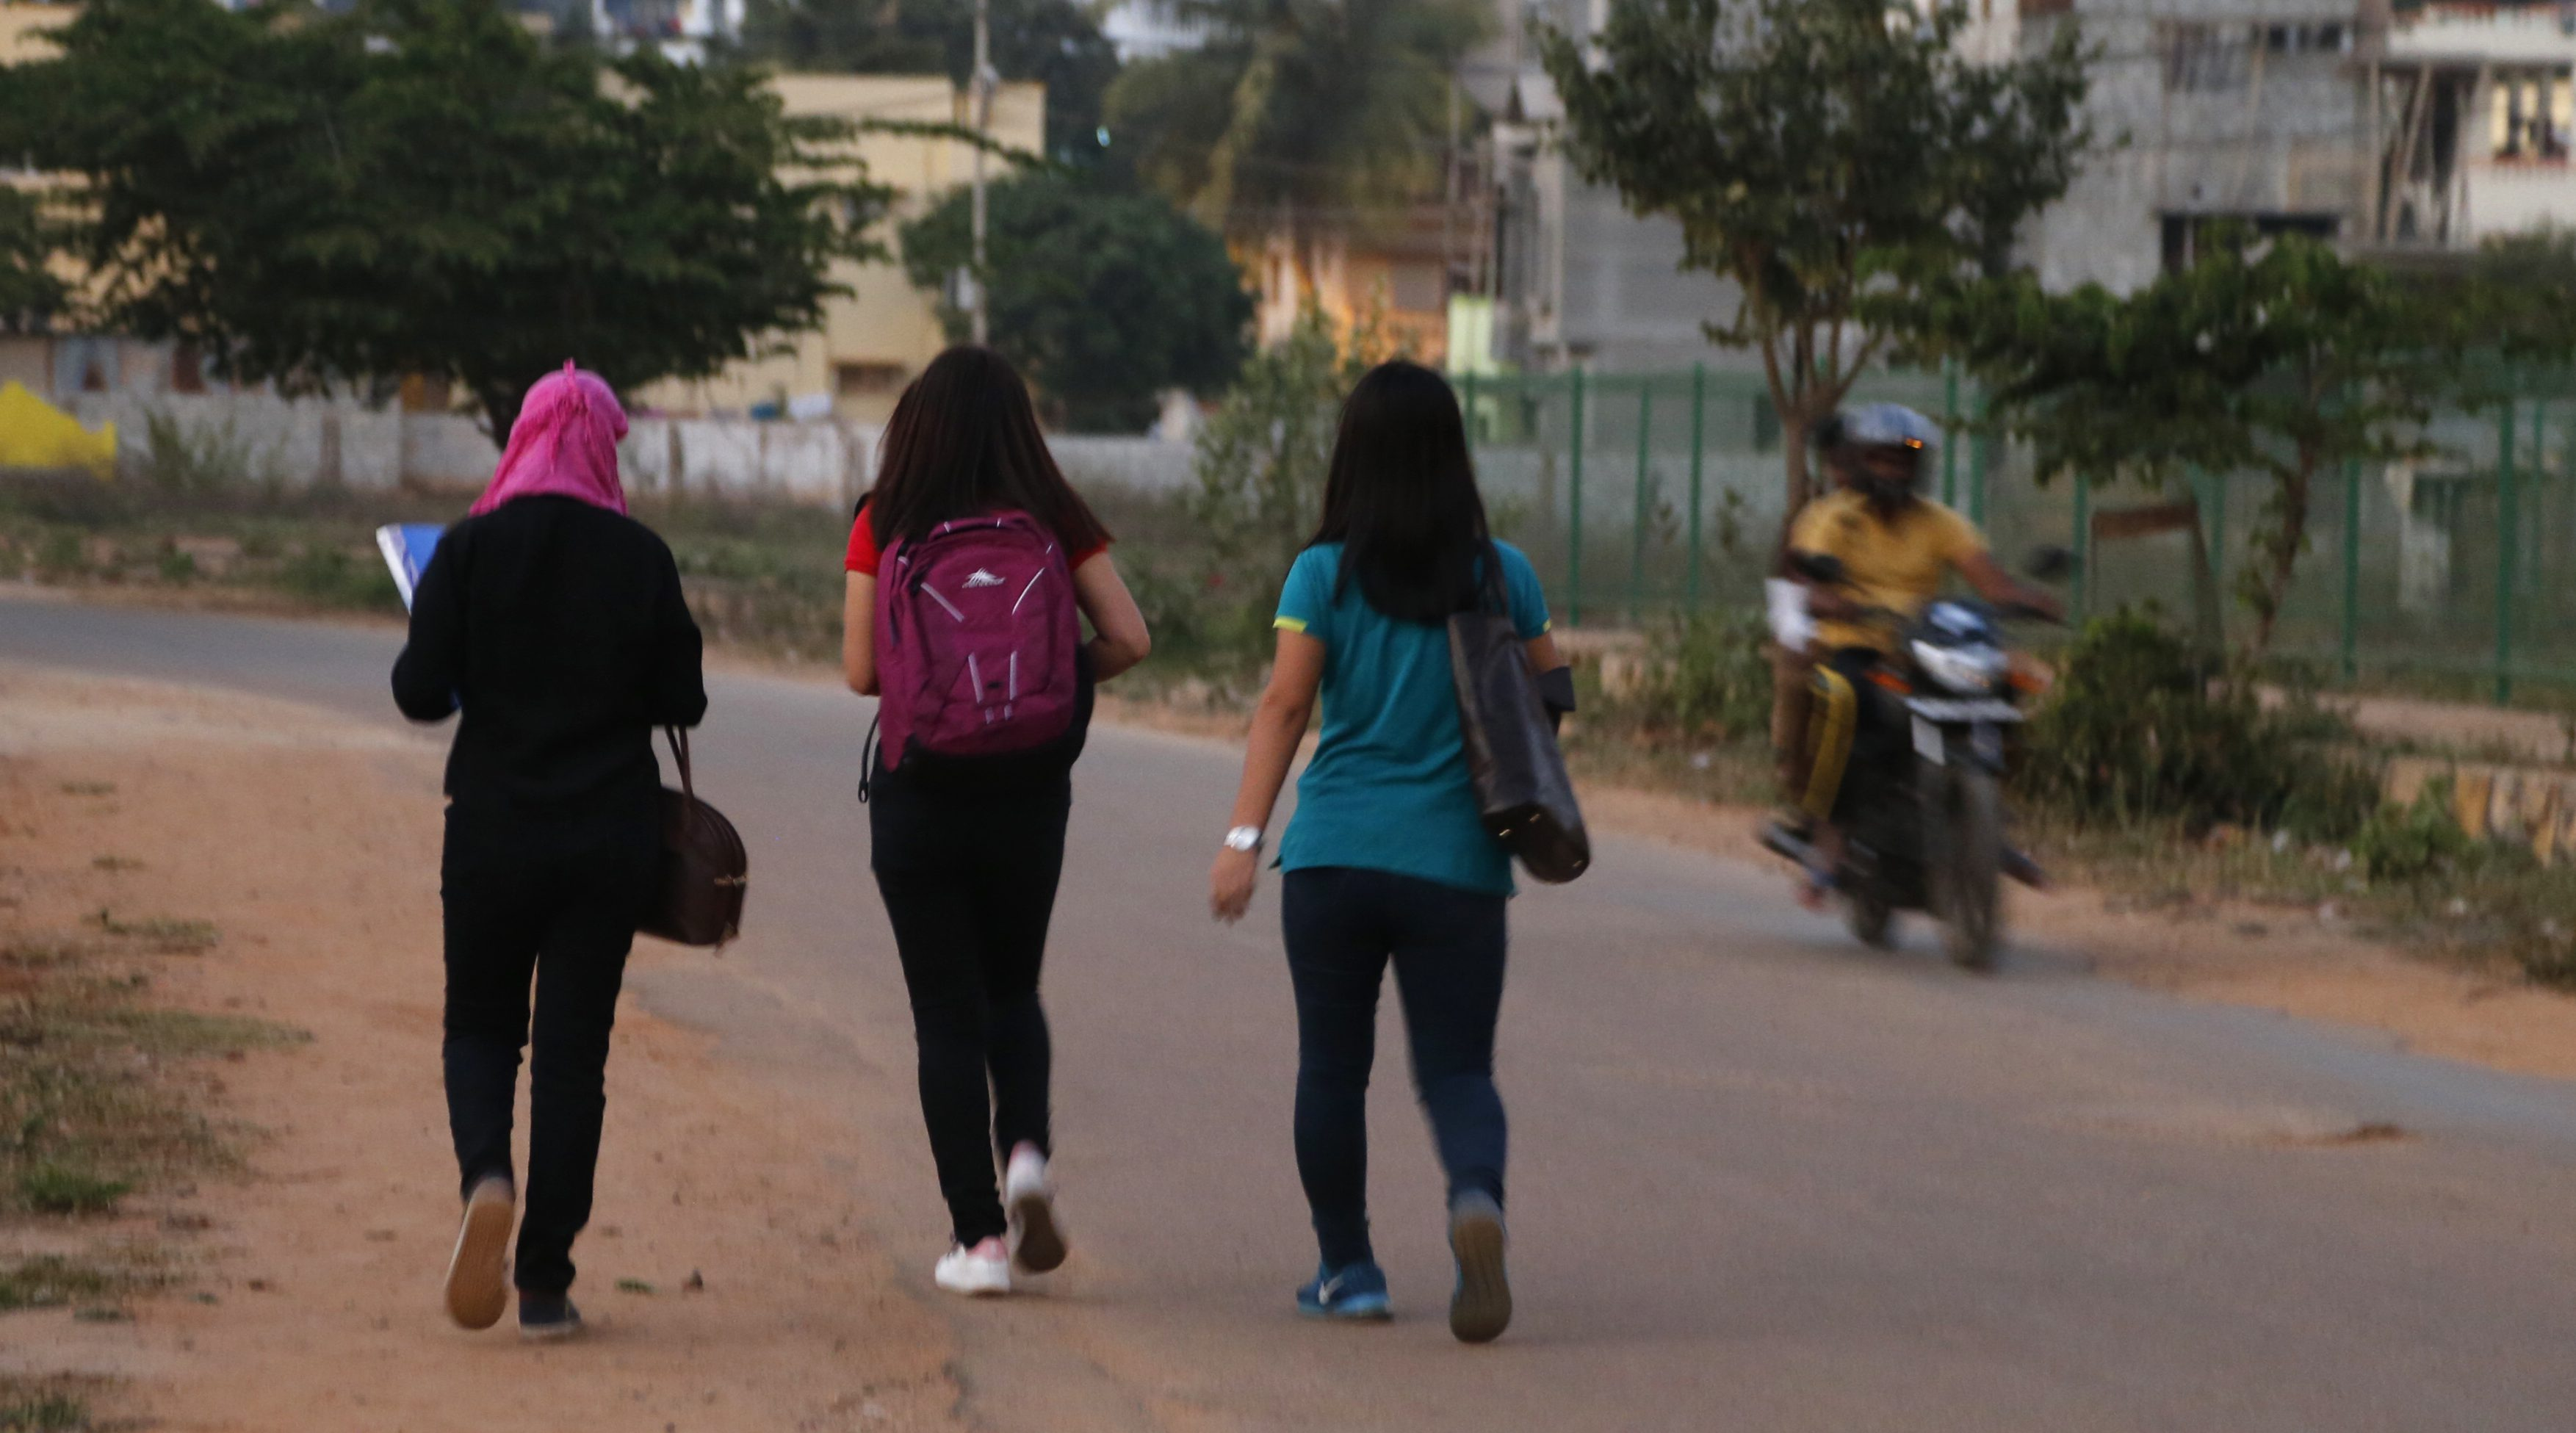 A motorist rides past young Indian girls in Bangalore, India, Wednesday, Jan. 4, 2017. Police detained at least six suspects Wednesday, days after outrage erupted in India over several women being groped and molested during New Year's Eve celebrations in the southern city of Bangalore, the country's information technology hub. The incident highlights the persistent violence against women in India despite tougher laws against sexual assault imposed after the December 2012 death of a young woman who was gang-raped on a bus in New Delhi.